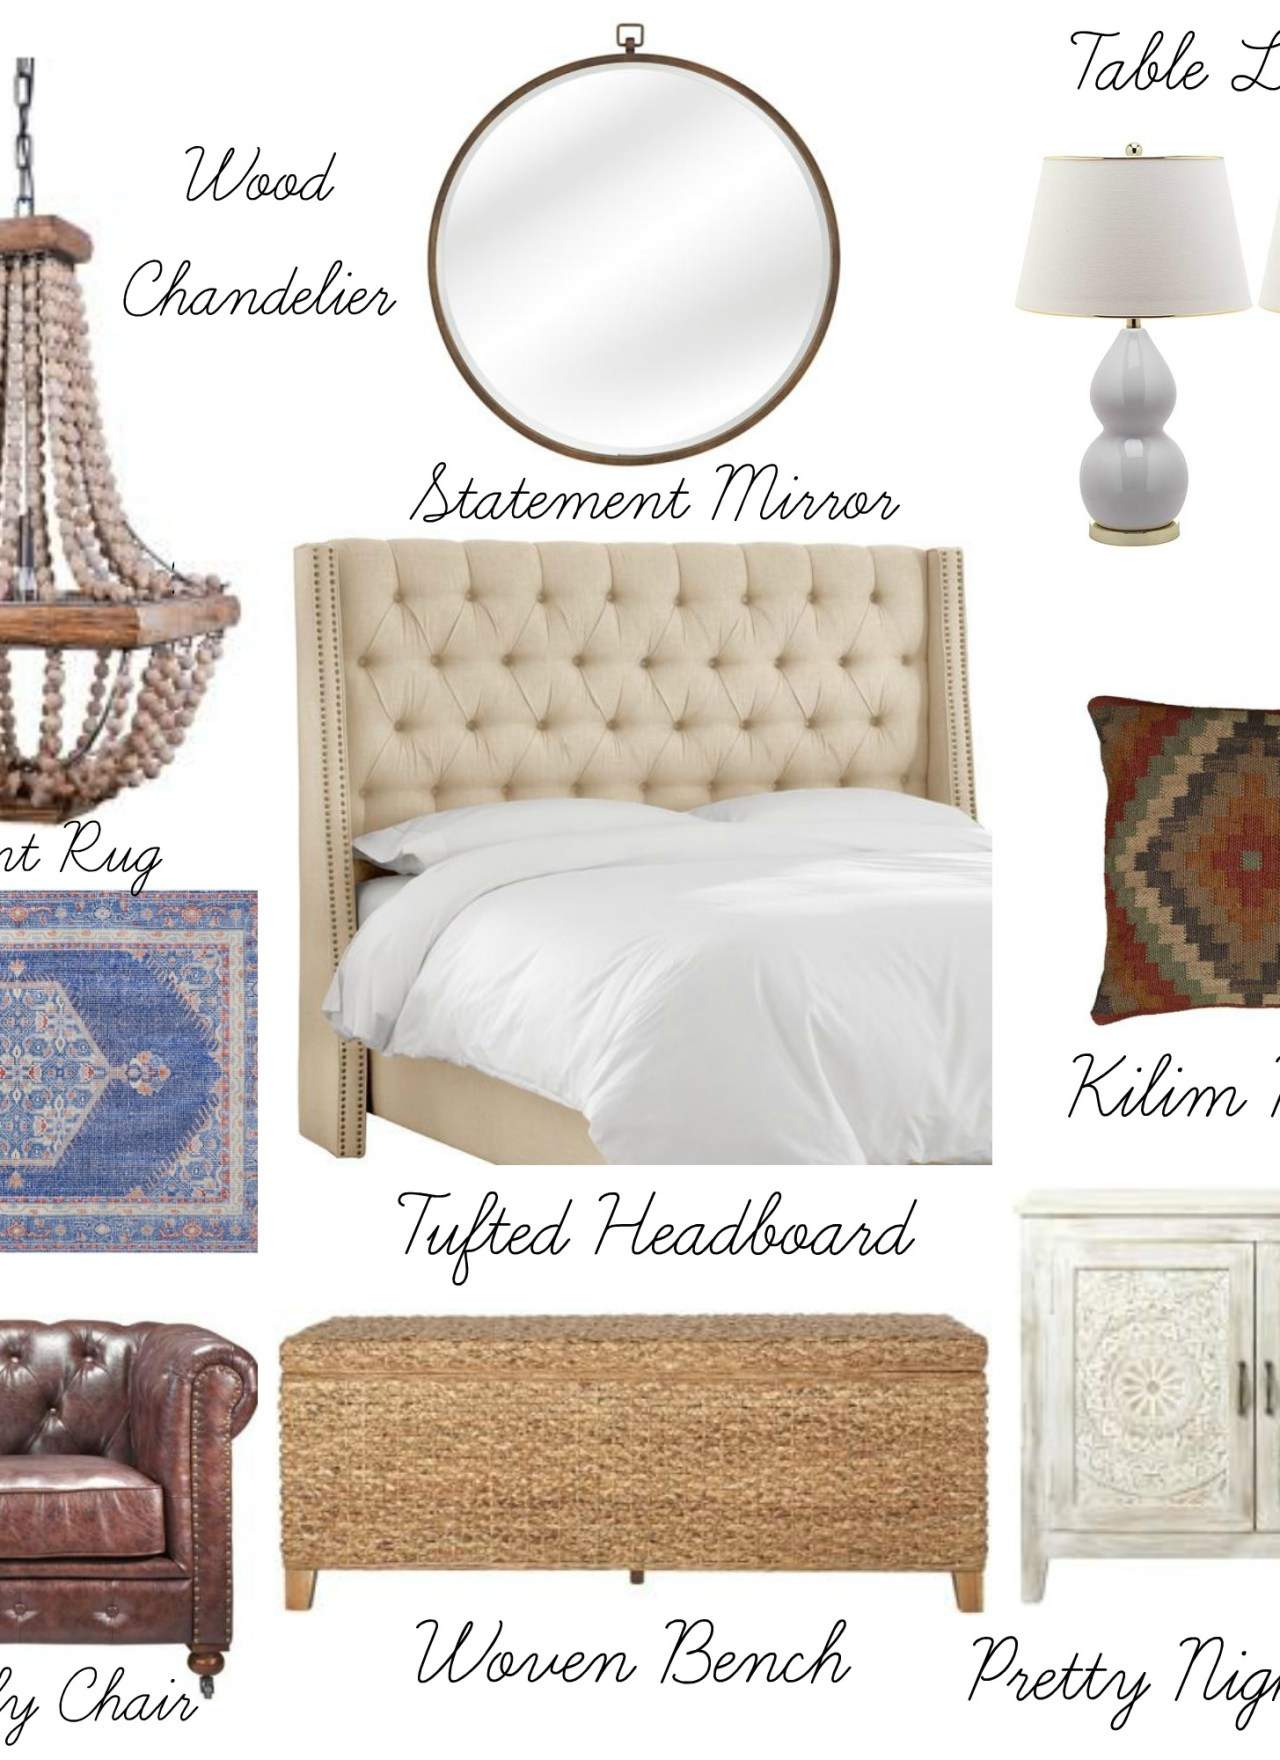 Bedroom Makeover with Home Decorators